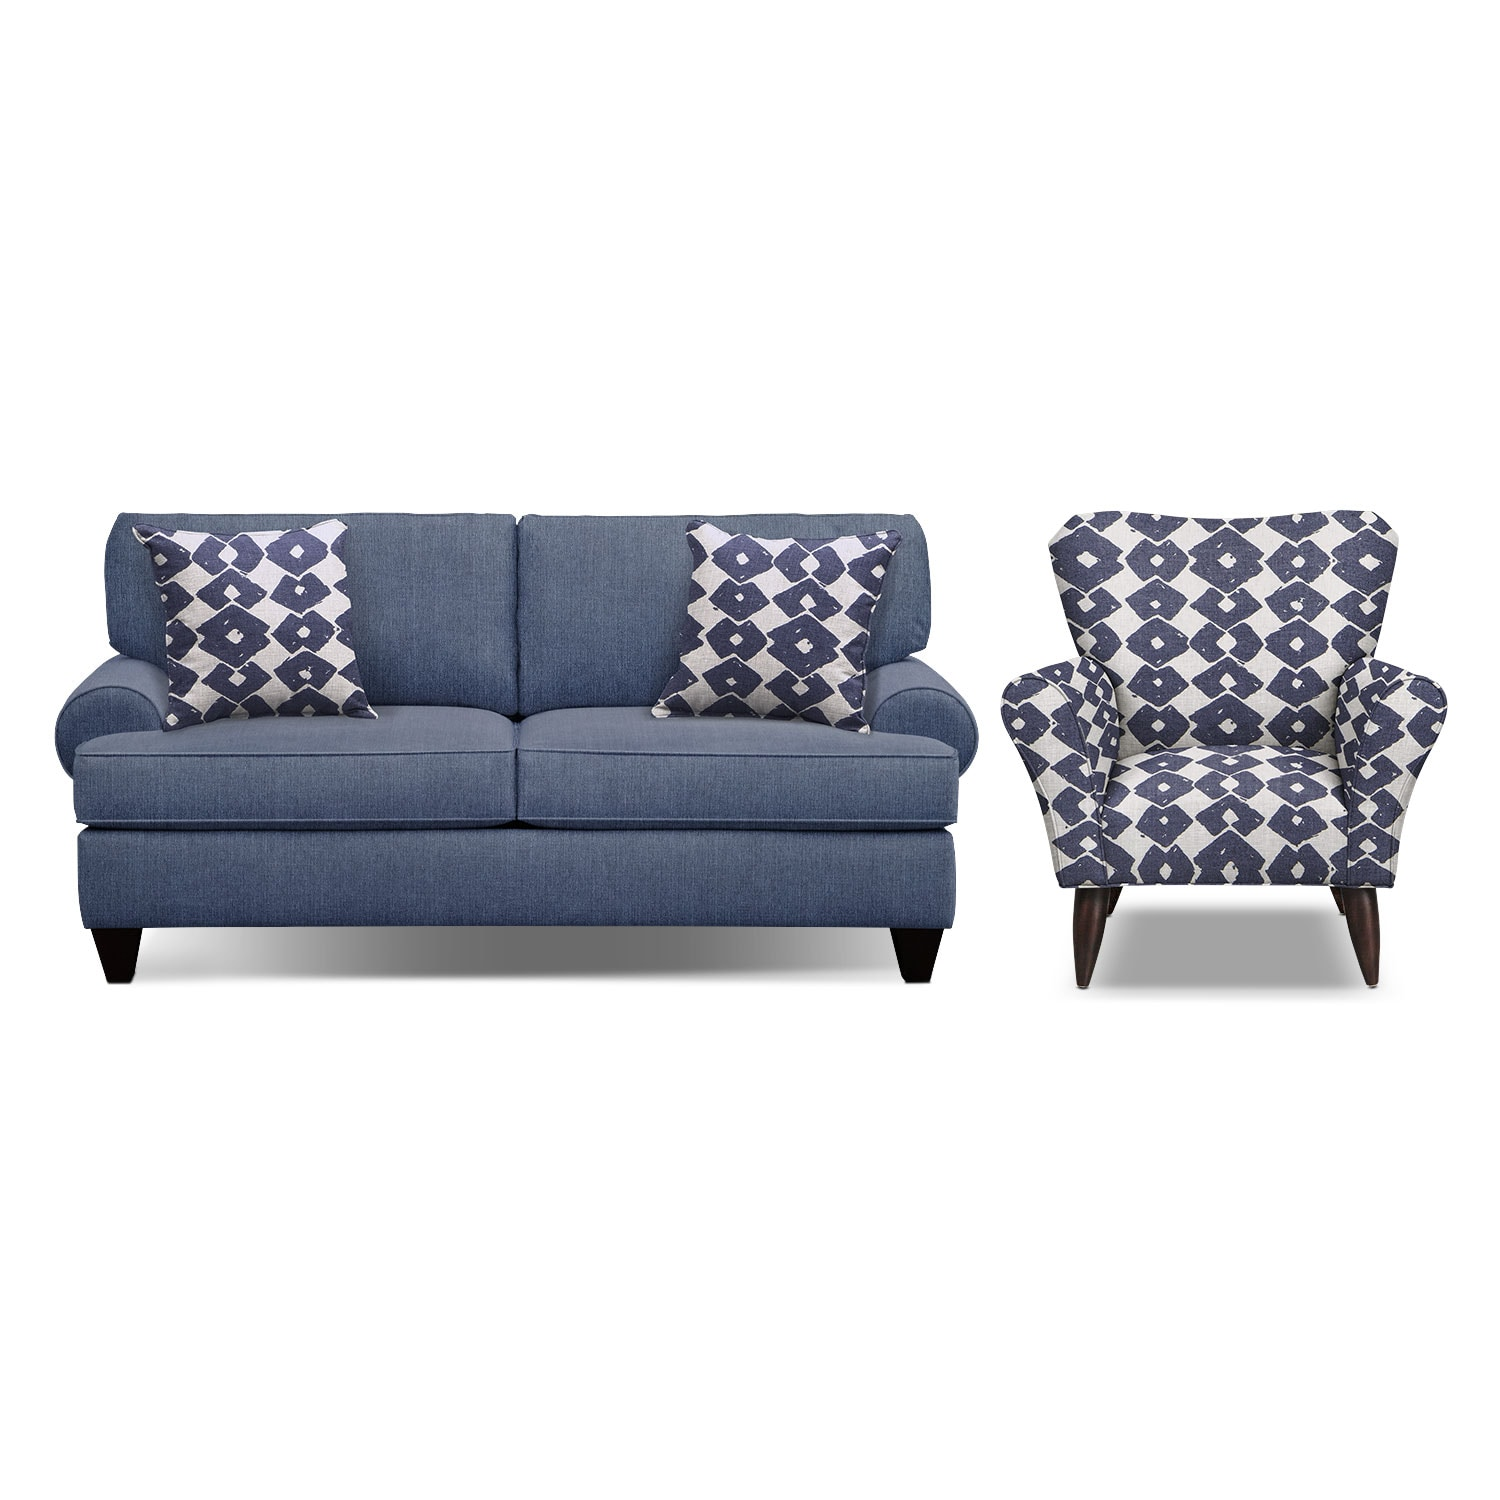 "Living Room Furniture - Bailey Blue 79"" Memory Foam Sleeper Sofa and Accent Chair Set"